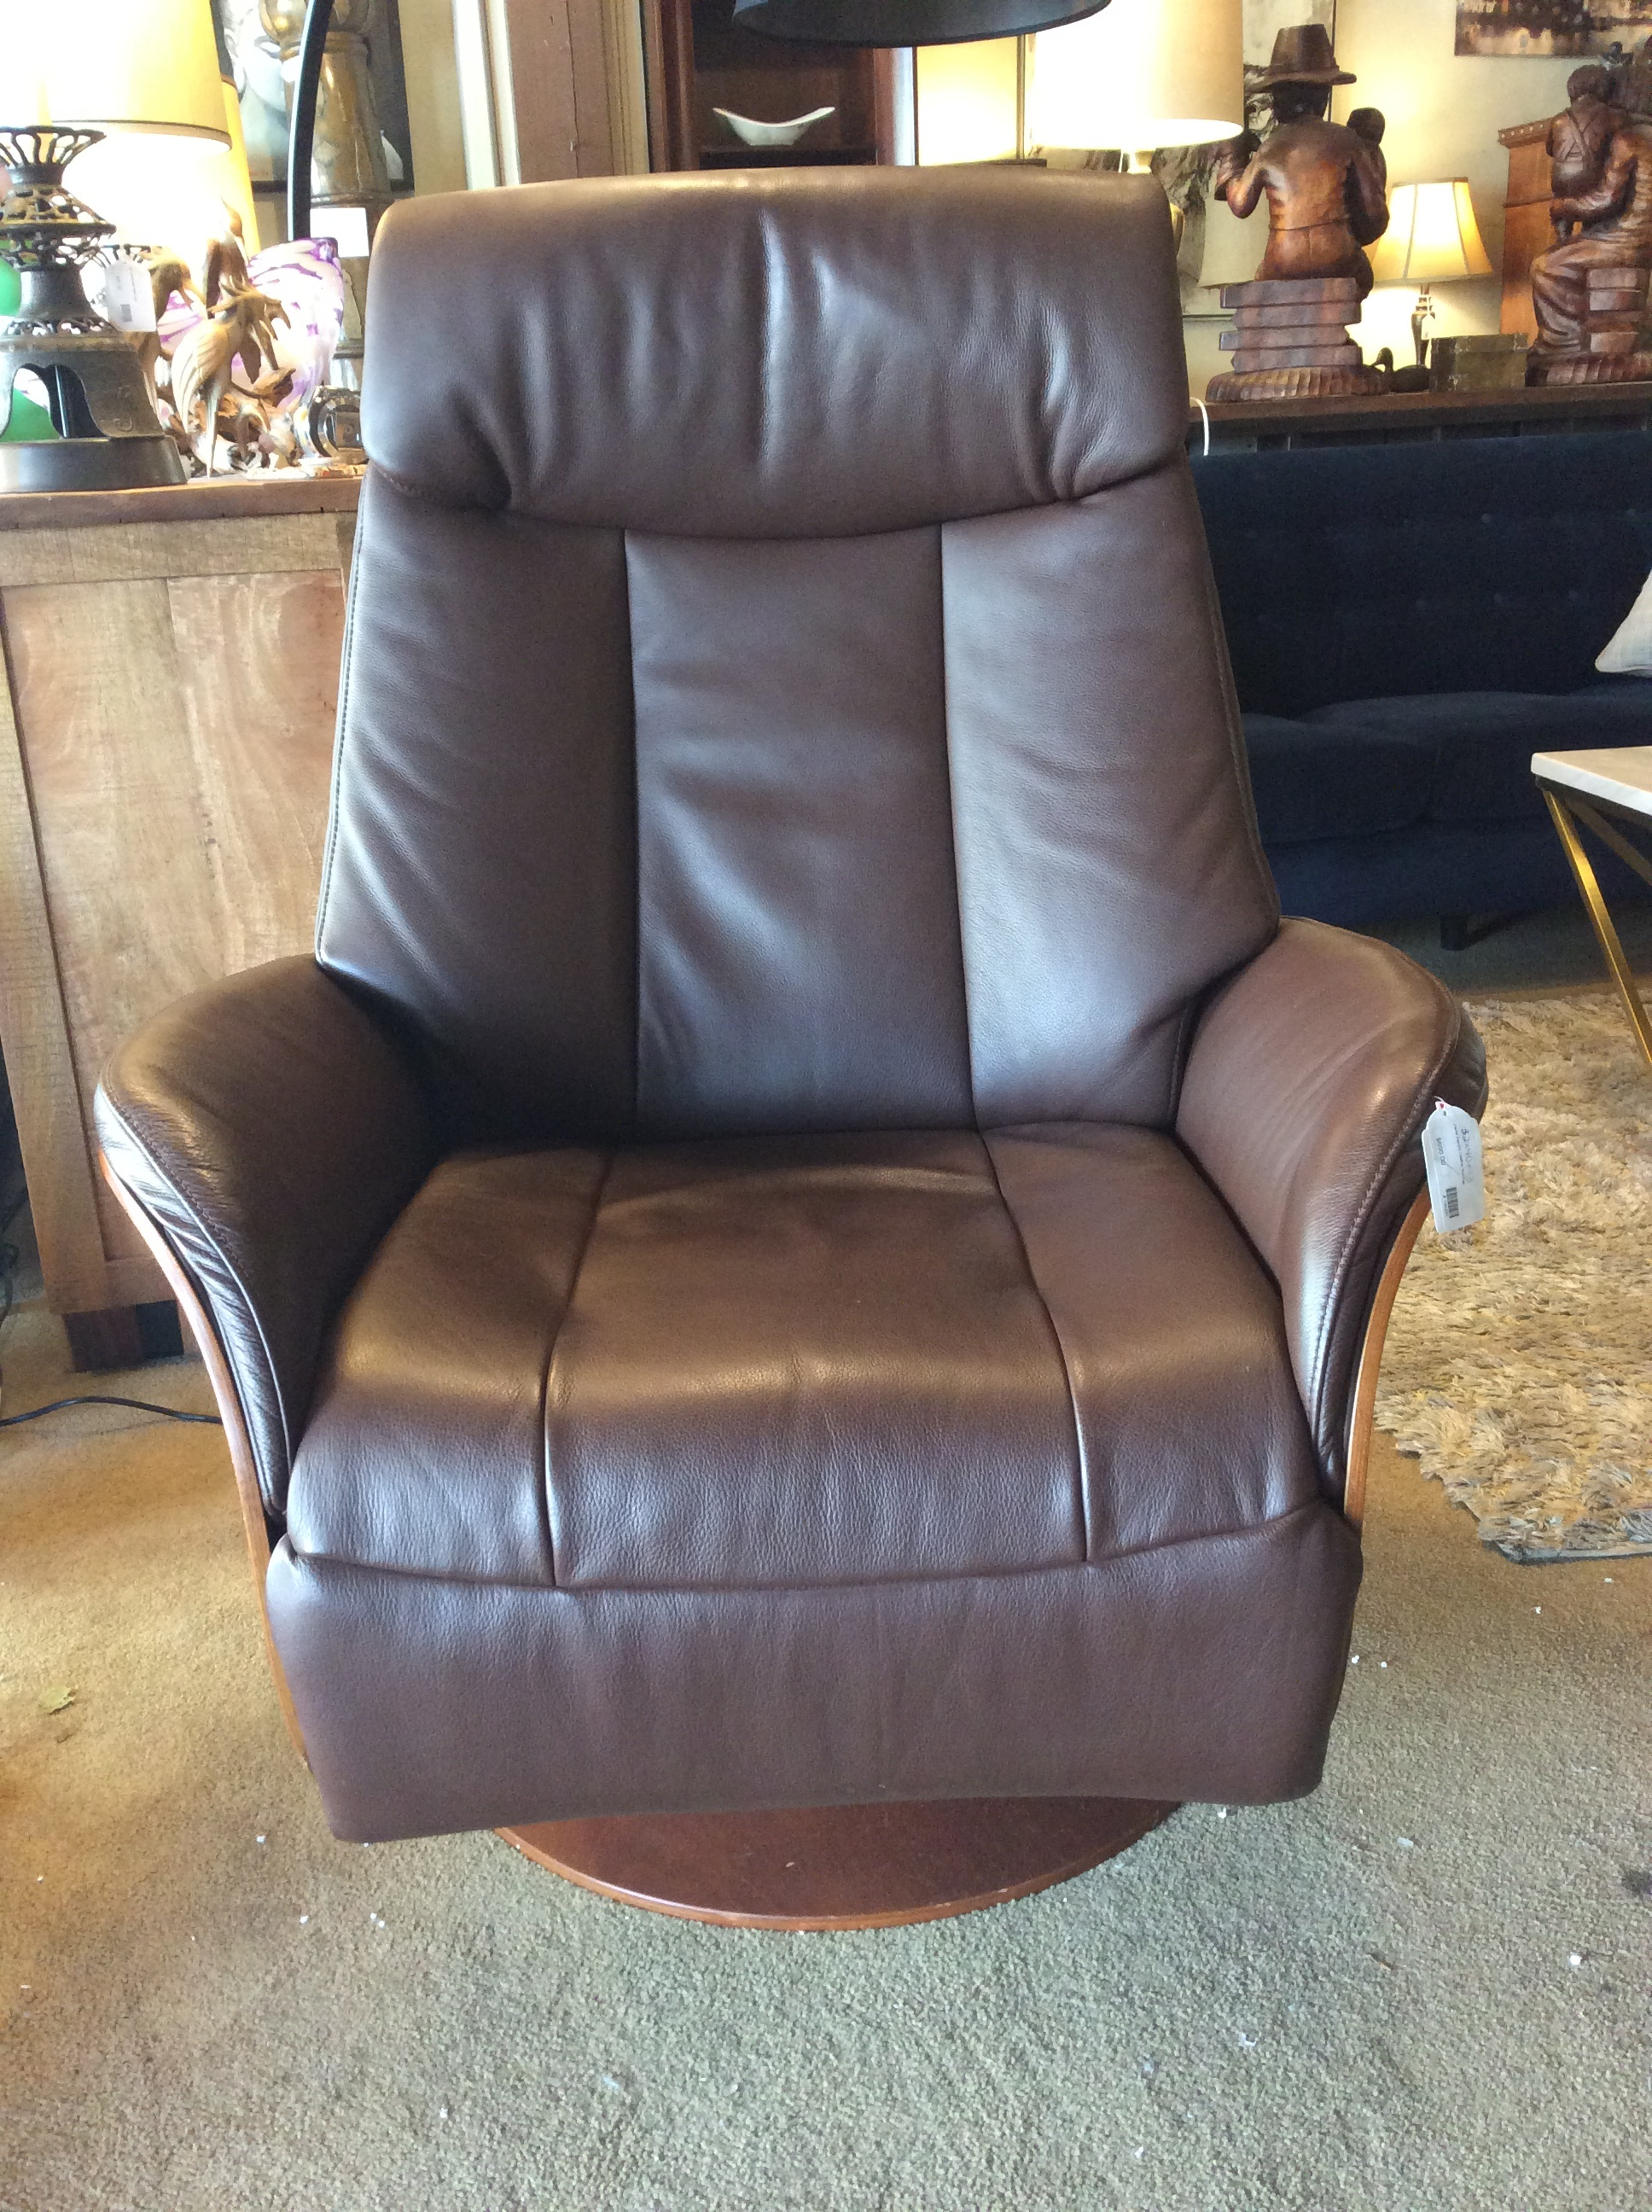 Awe Inspiring Dania Electric Leather Recliner Sold Gmtry Best Dining Table And Chair Ideas Images Gmtryco